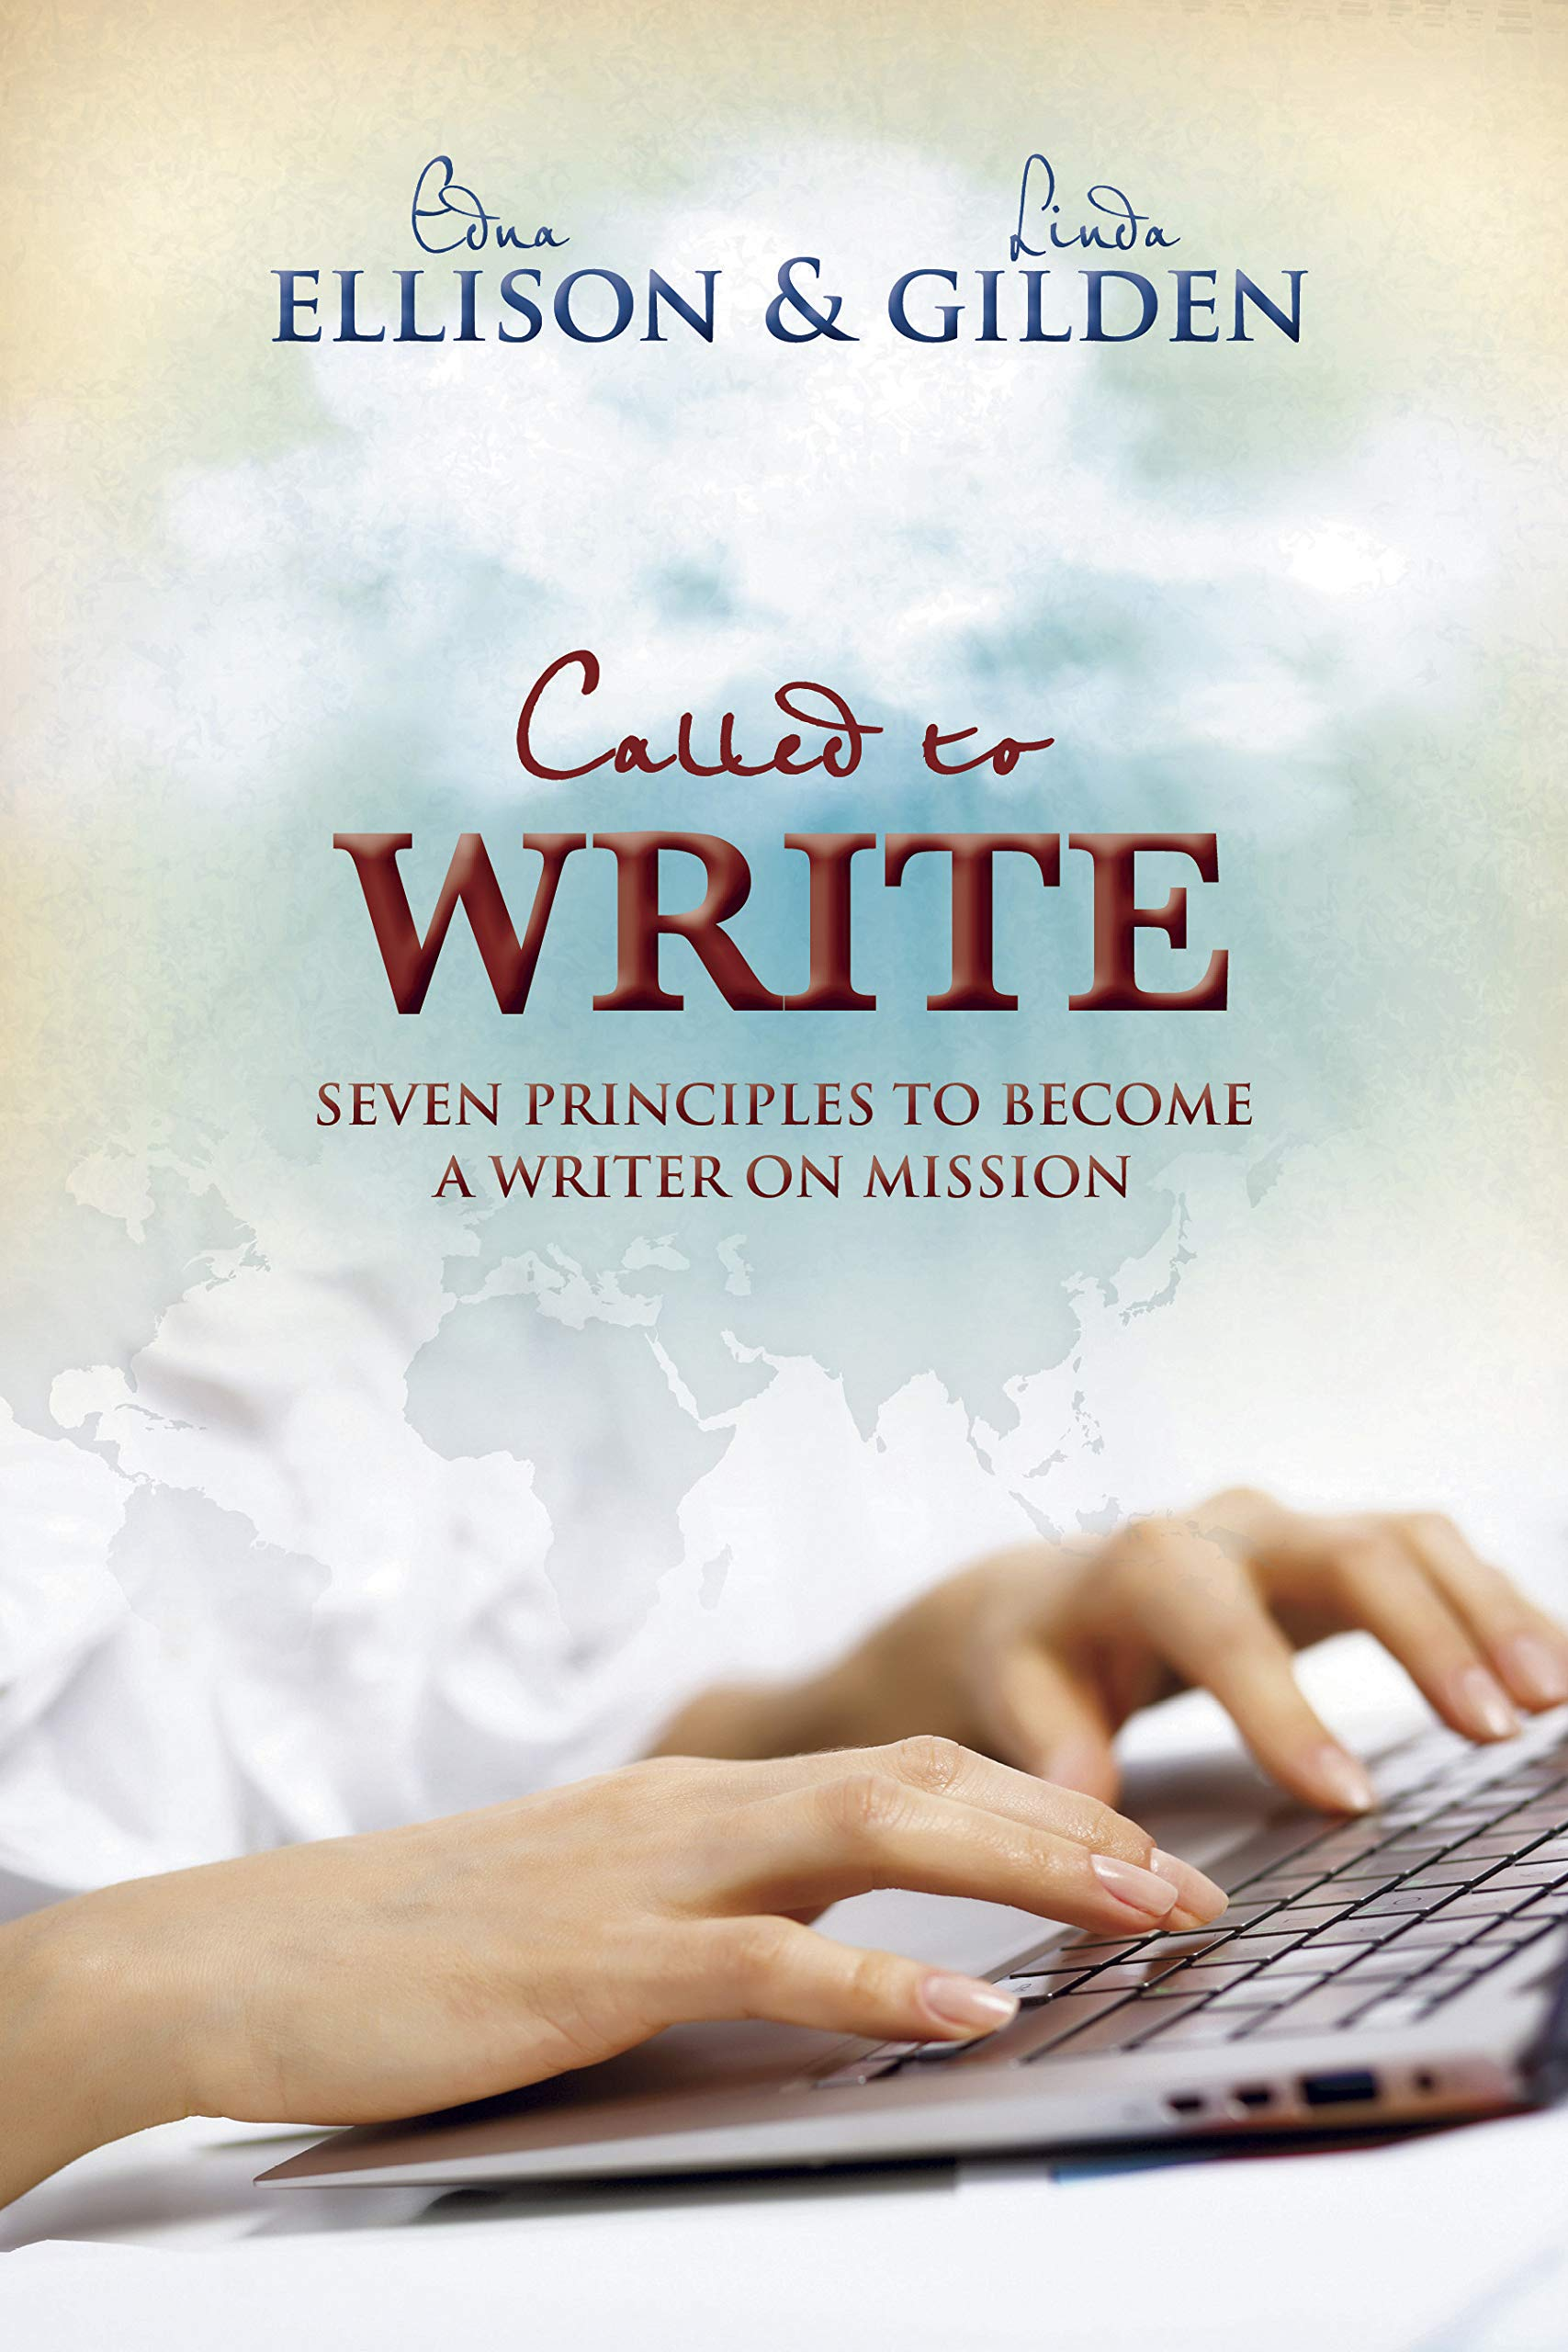 Called To Write Seven Principles To Become A Writer On Mission  Follow The Author